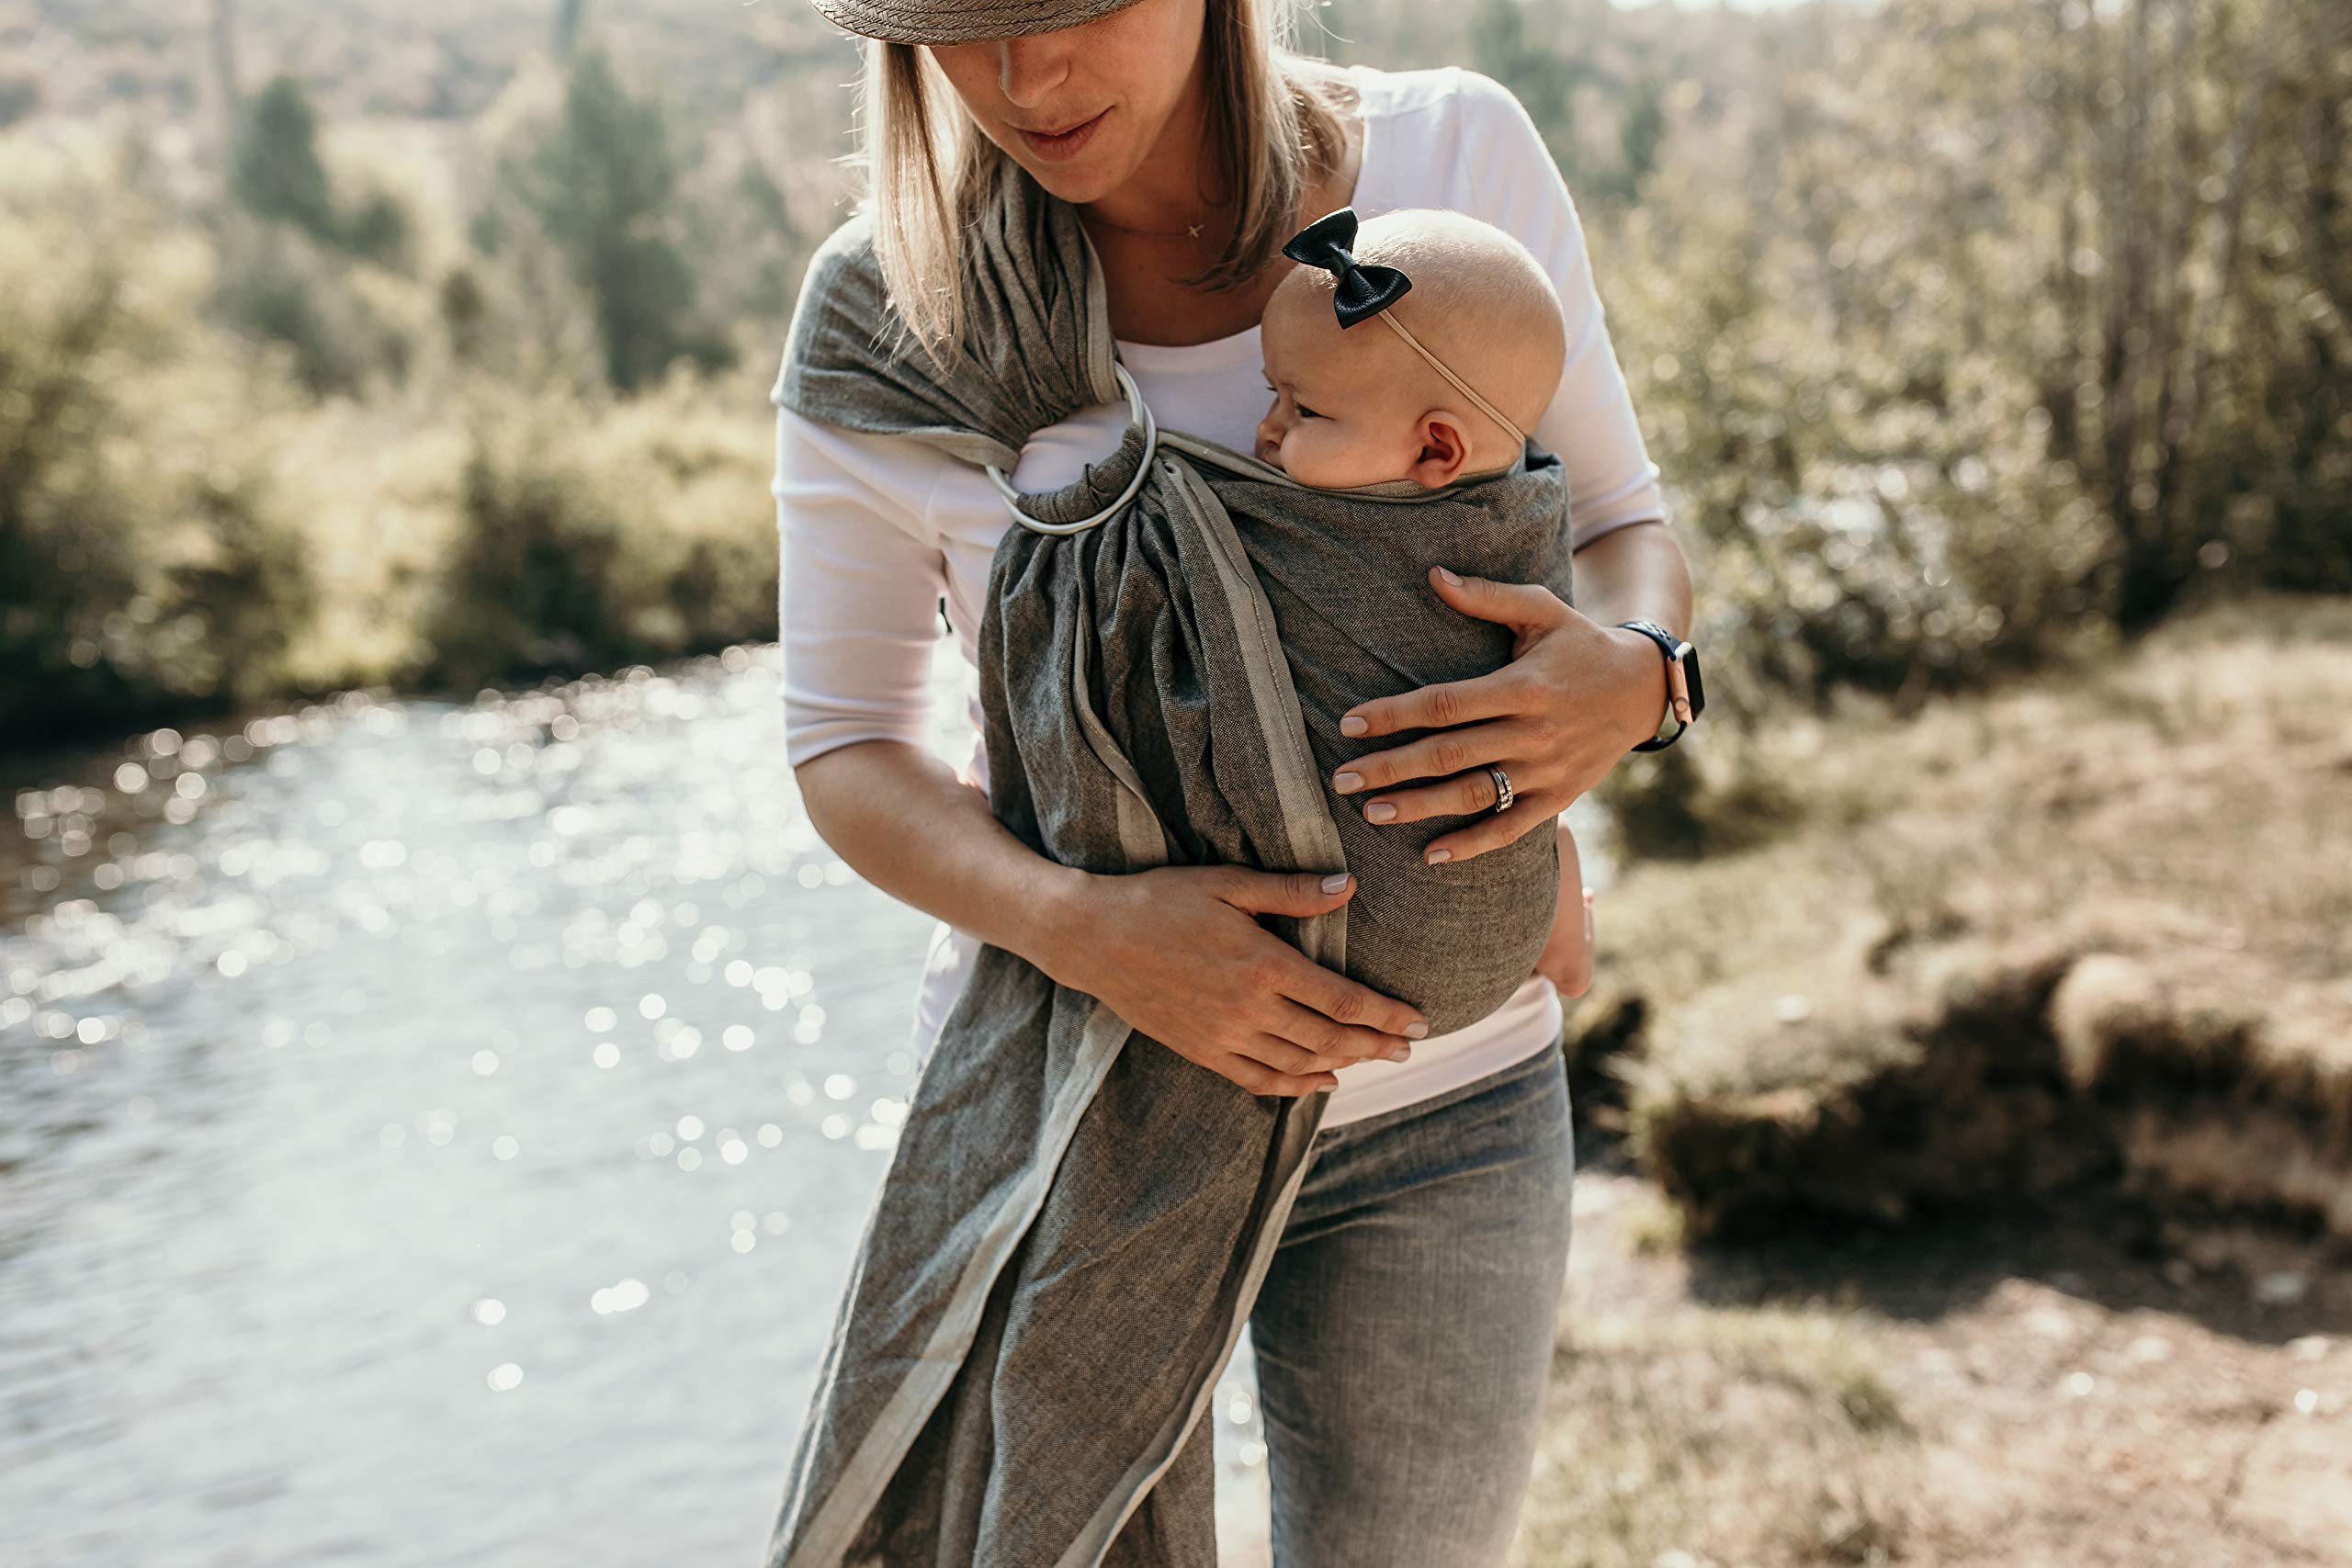 Hip Baby Wrap Ring Sling Baby Carrier for Infants and Toddlers (Midnight) Hip Baby Wrap Eco-Friendly - Made with beautiful 100% cotton, hand-loomed, breathable fabric and with top quality aluminum SlingRings. For babies 8 - 35 lbs. Fair trade and individually handwoven with eco-friendly non- toxic dyes in India so each wrap is beautiful and unique. Our lightweight fabric makes the Hip Baby Wrap cooler for baby and easy to manipulate. Superior ergonomic design helps distribute baby's weight evenly and comfortably across caregiver's body, relieving the shoulders and neck from unnecessary strain. Great for nursing on-the-go and as a nursing cover. Enhances parent-child bonding and child development. 2